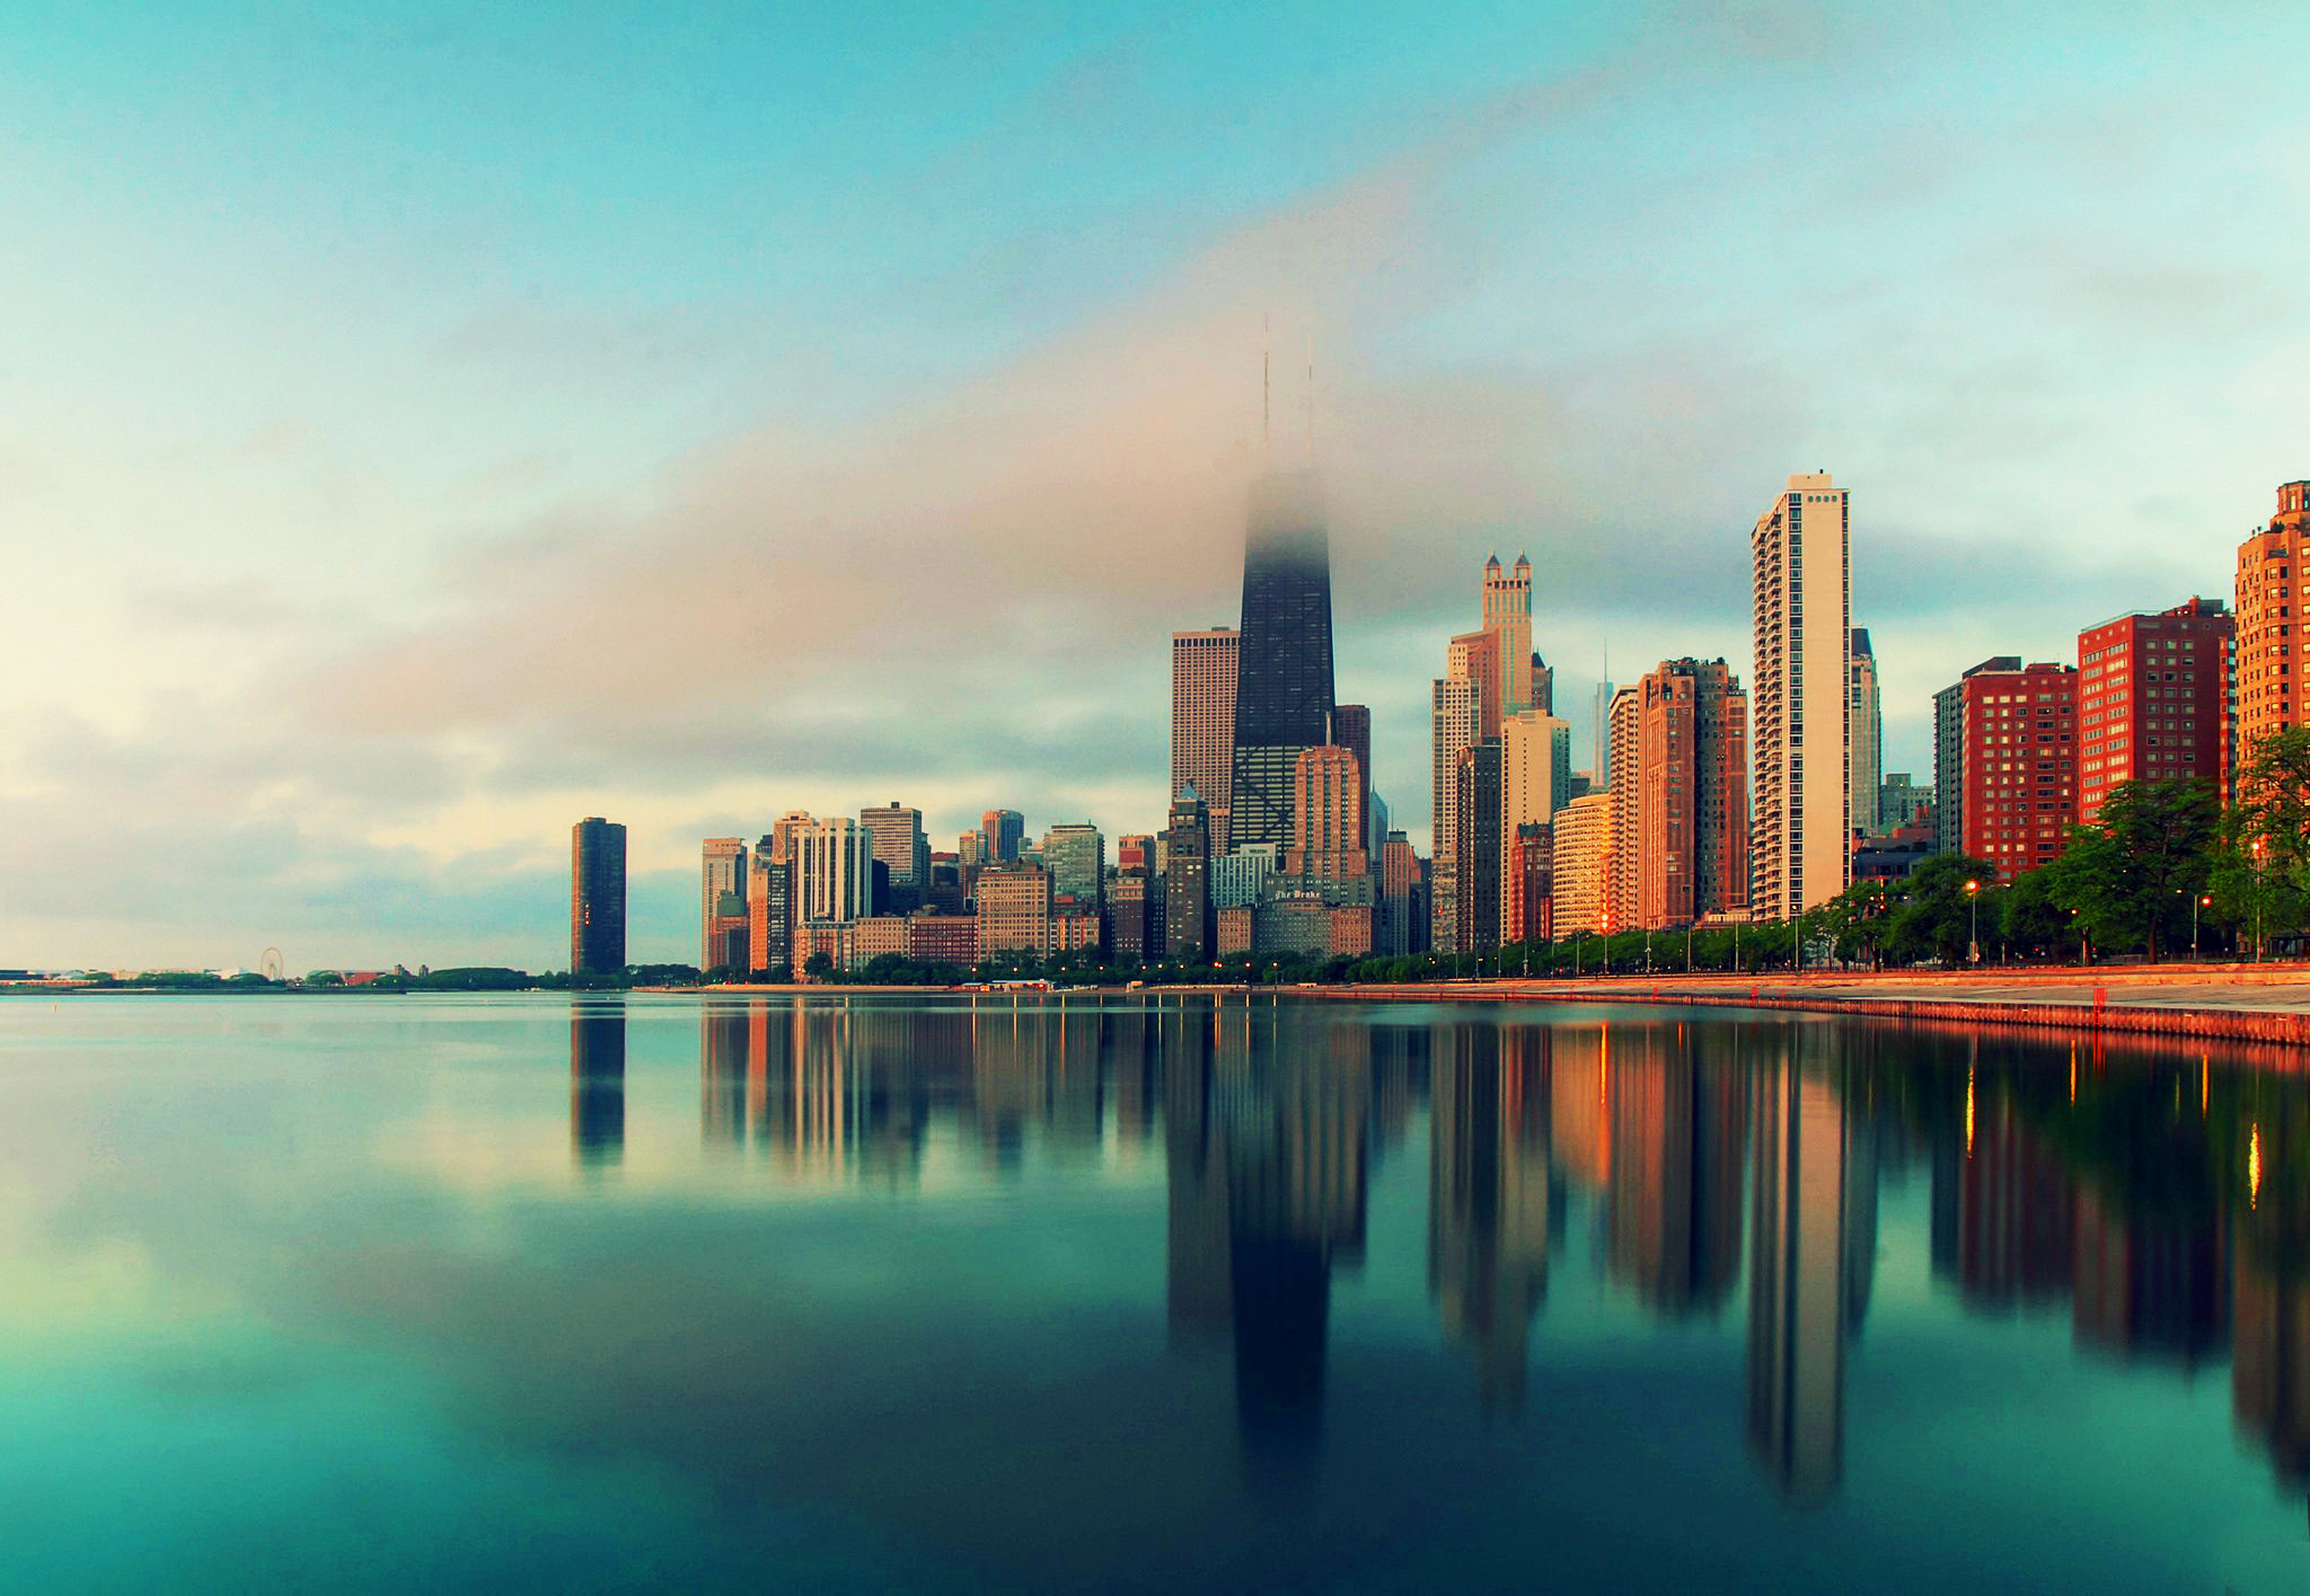 229 Chicago HD Wallpapers Background Images 3840x2653